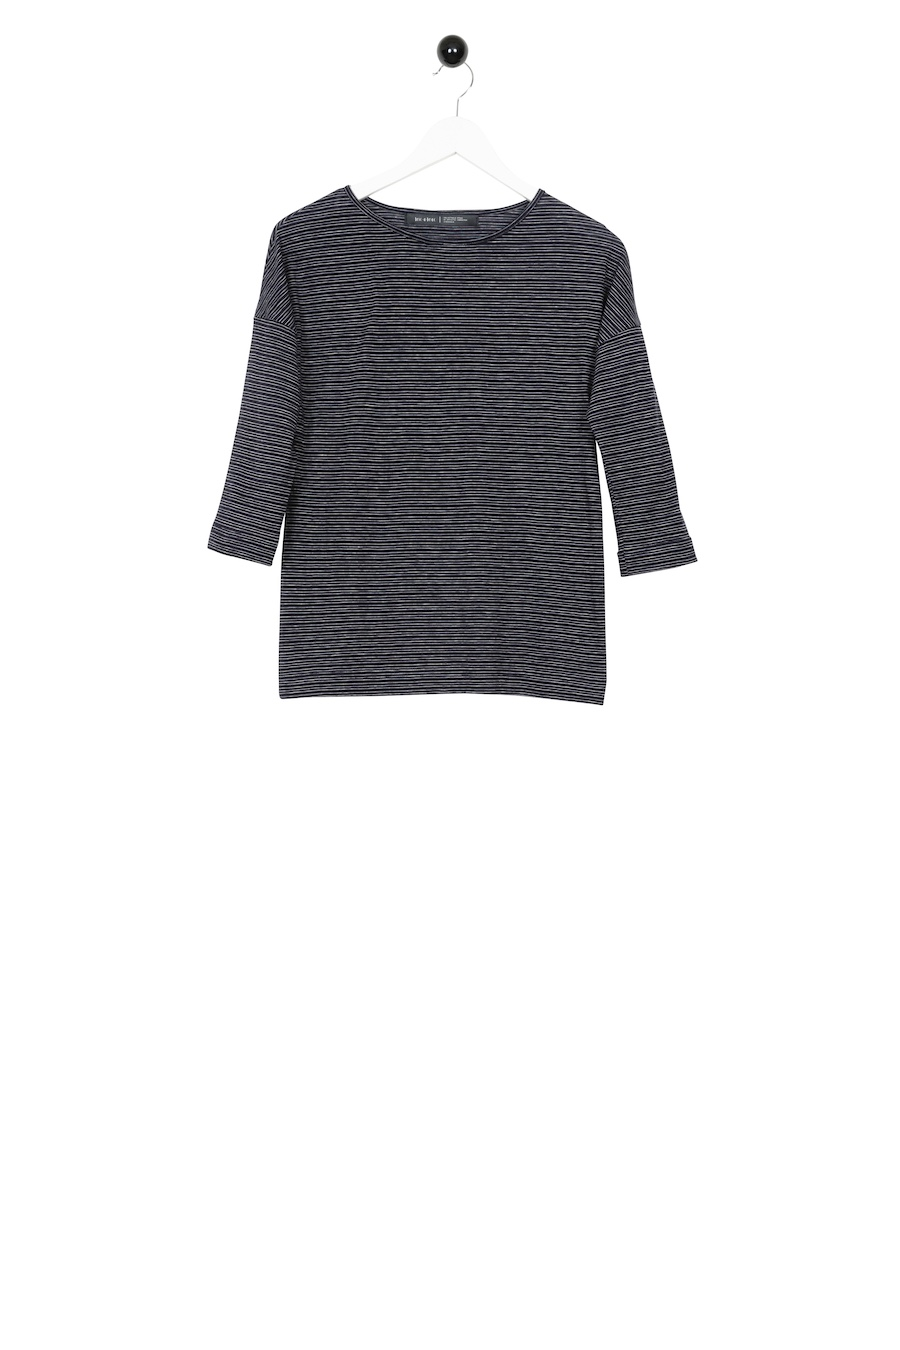 Antracit Sweater